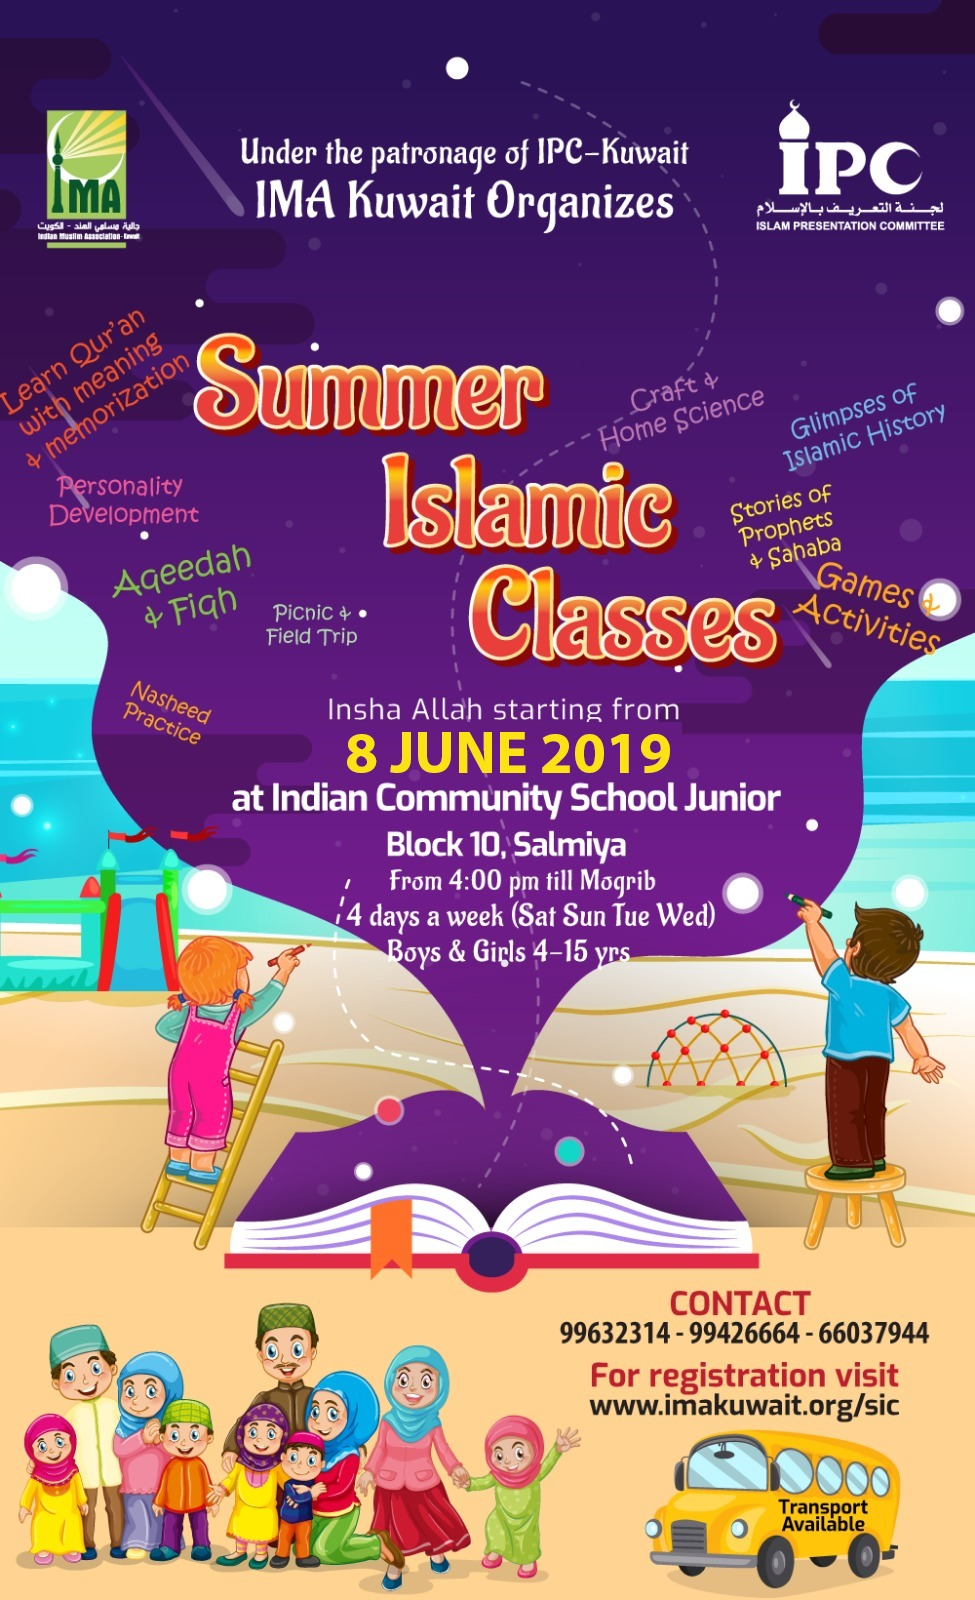 SUMMER ISLAMIC CLASSES WHAT ON IMAGE